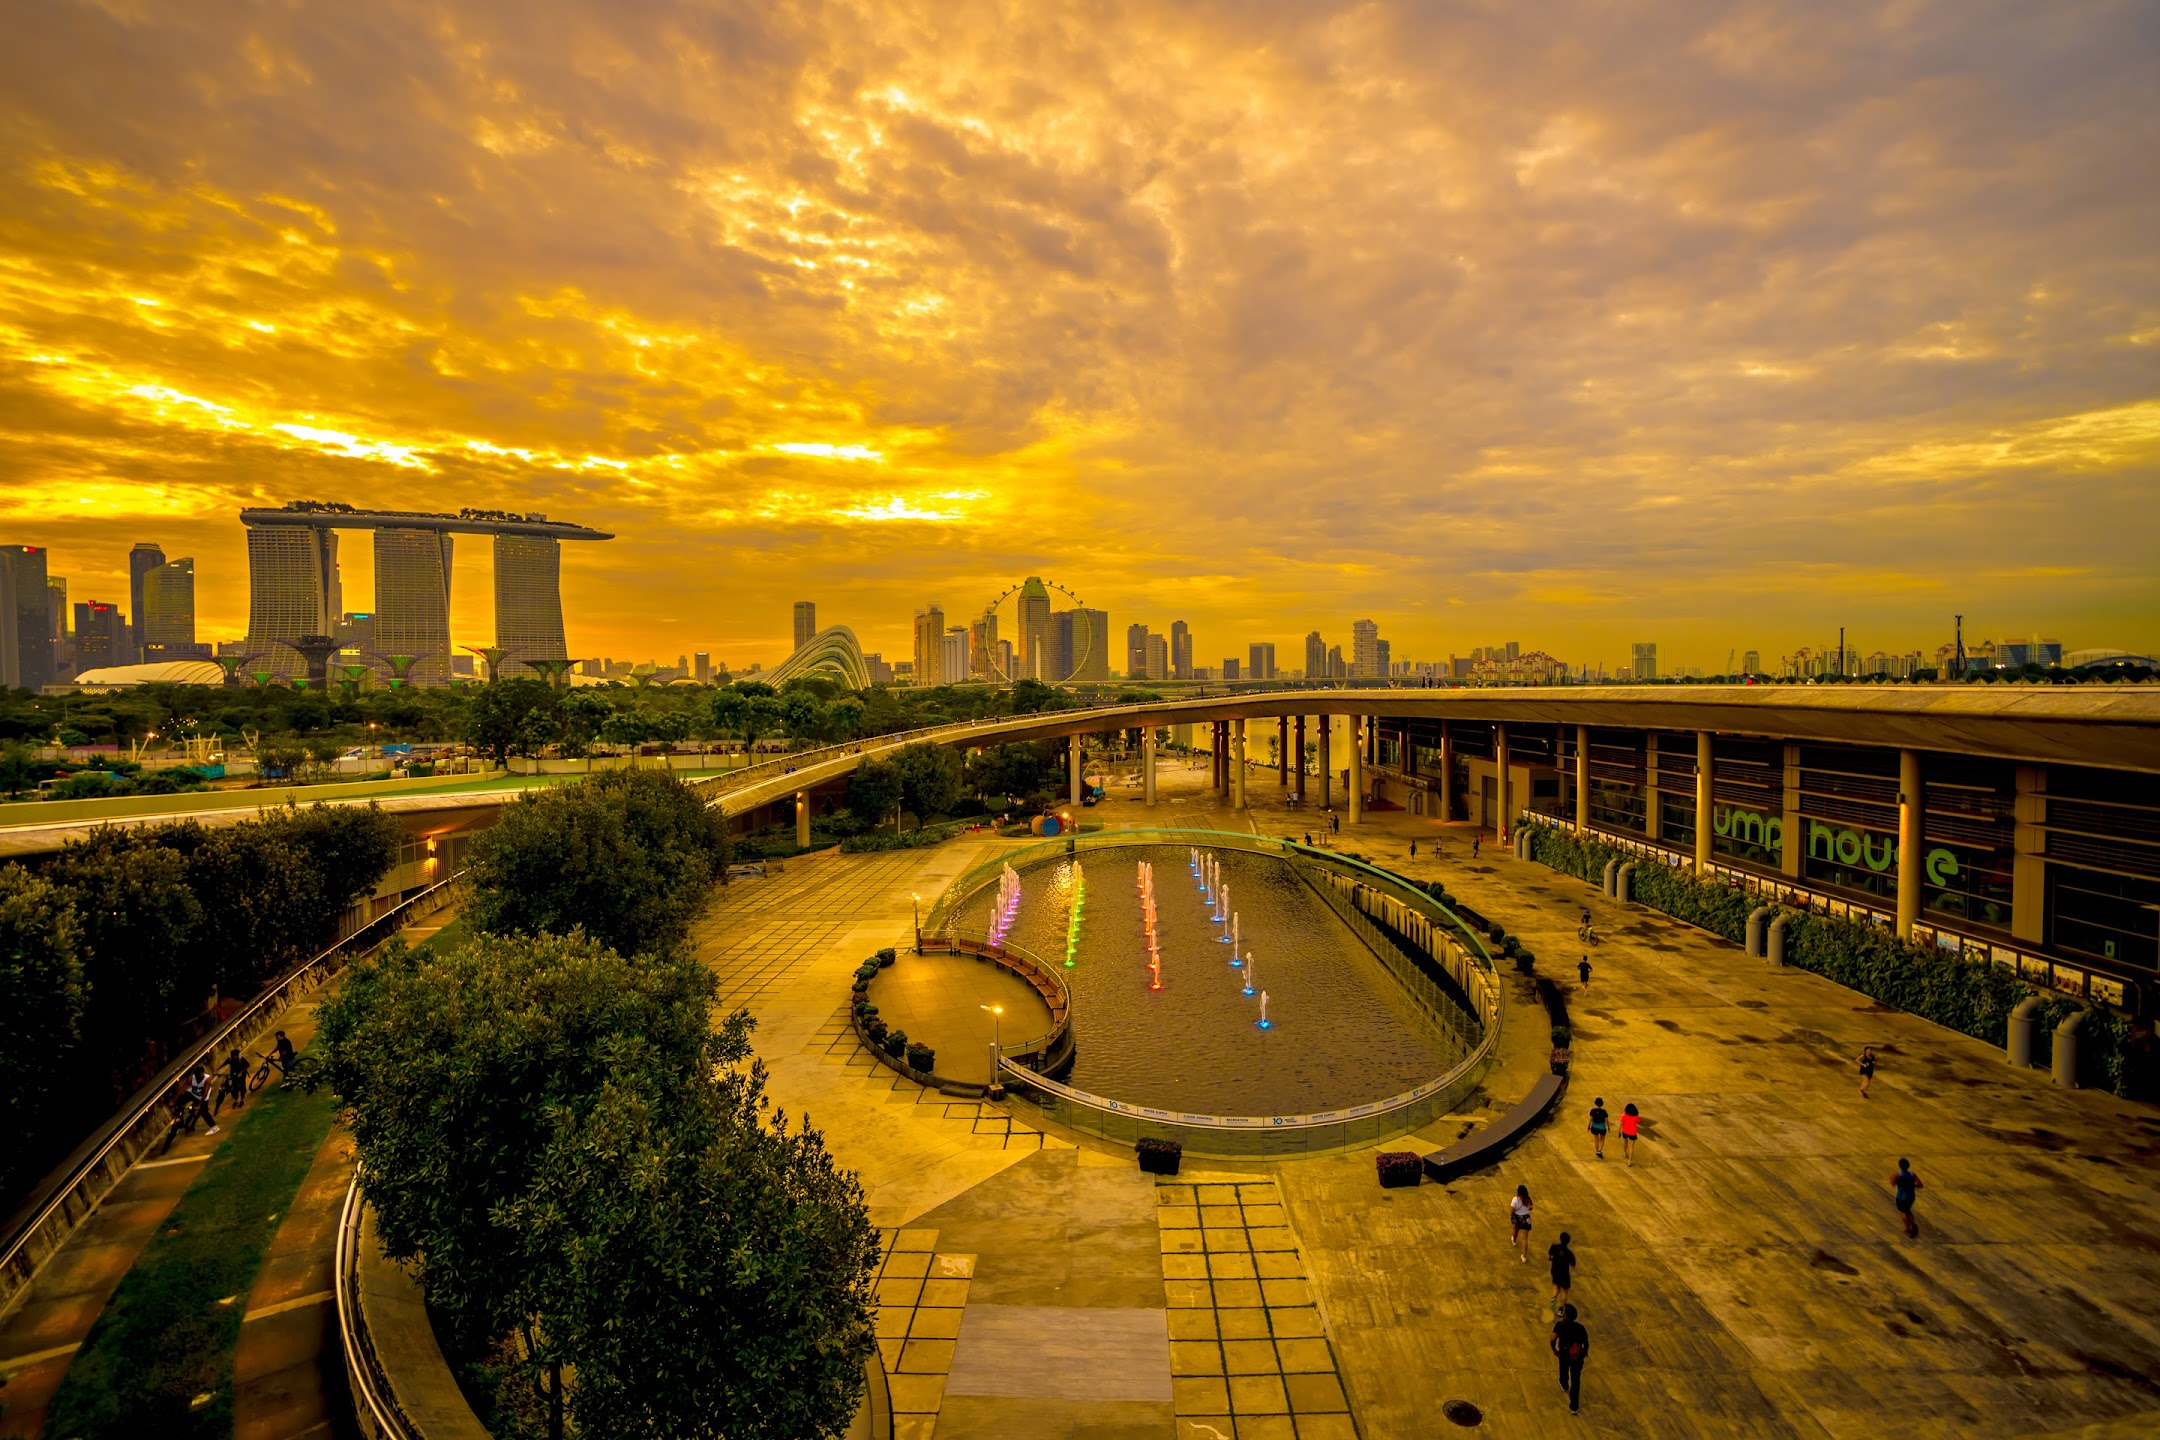 Singapore Marina Barrage evening4